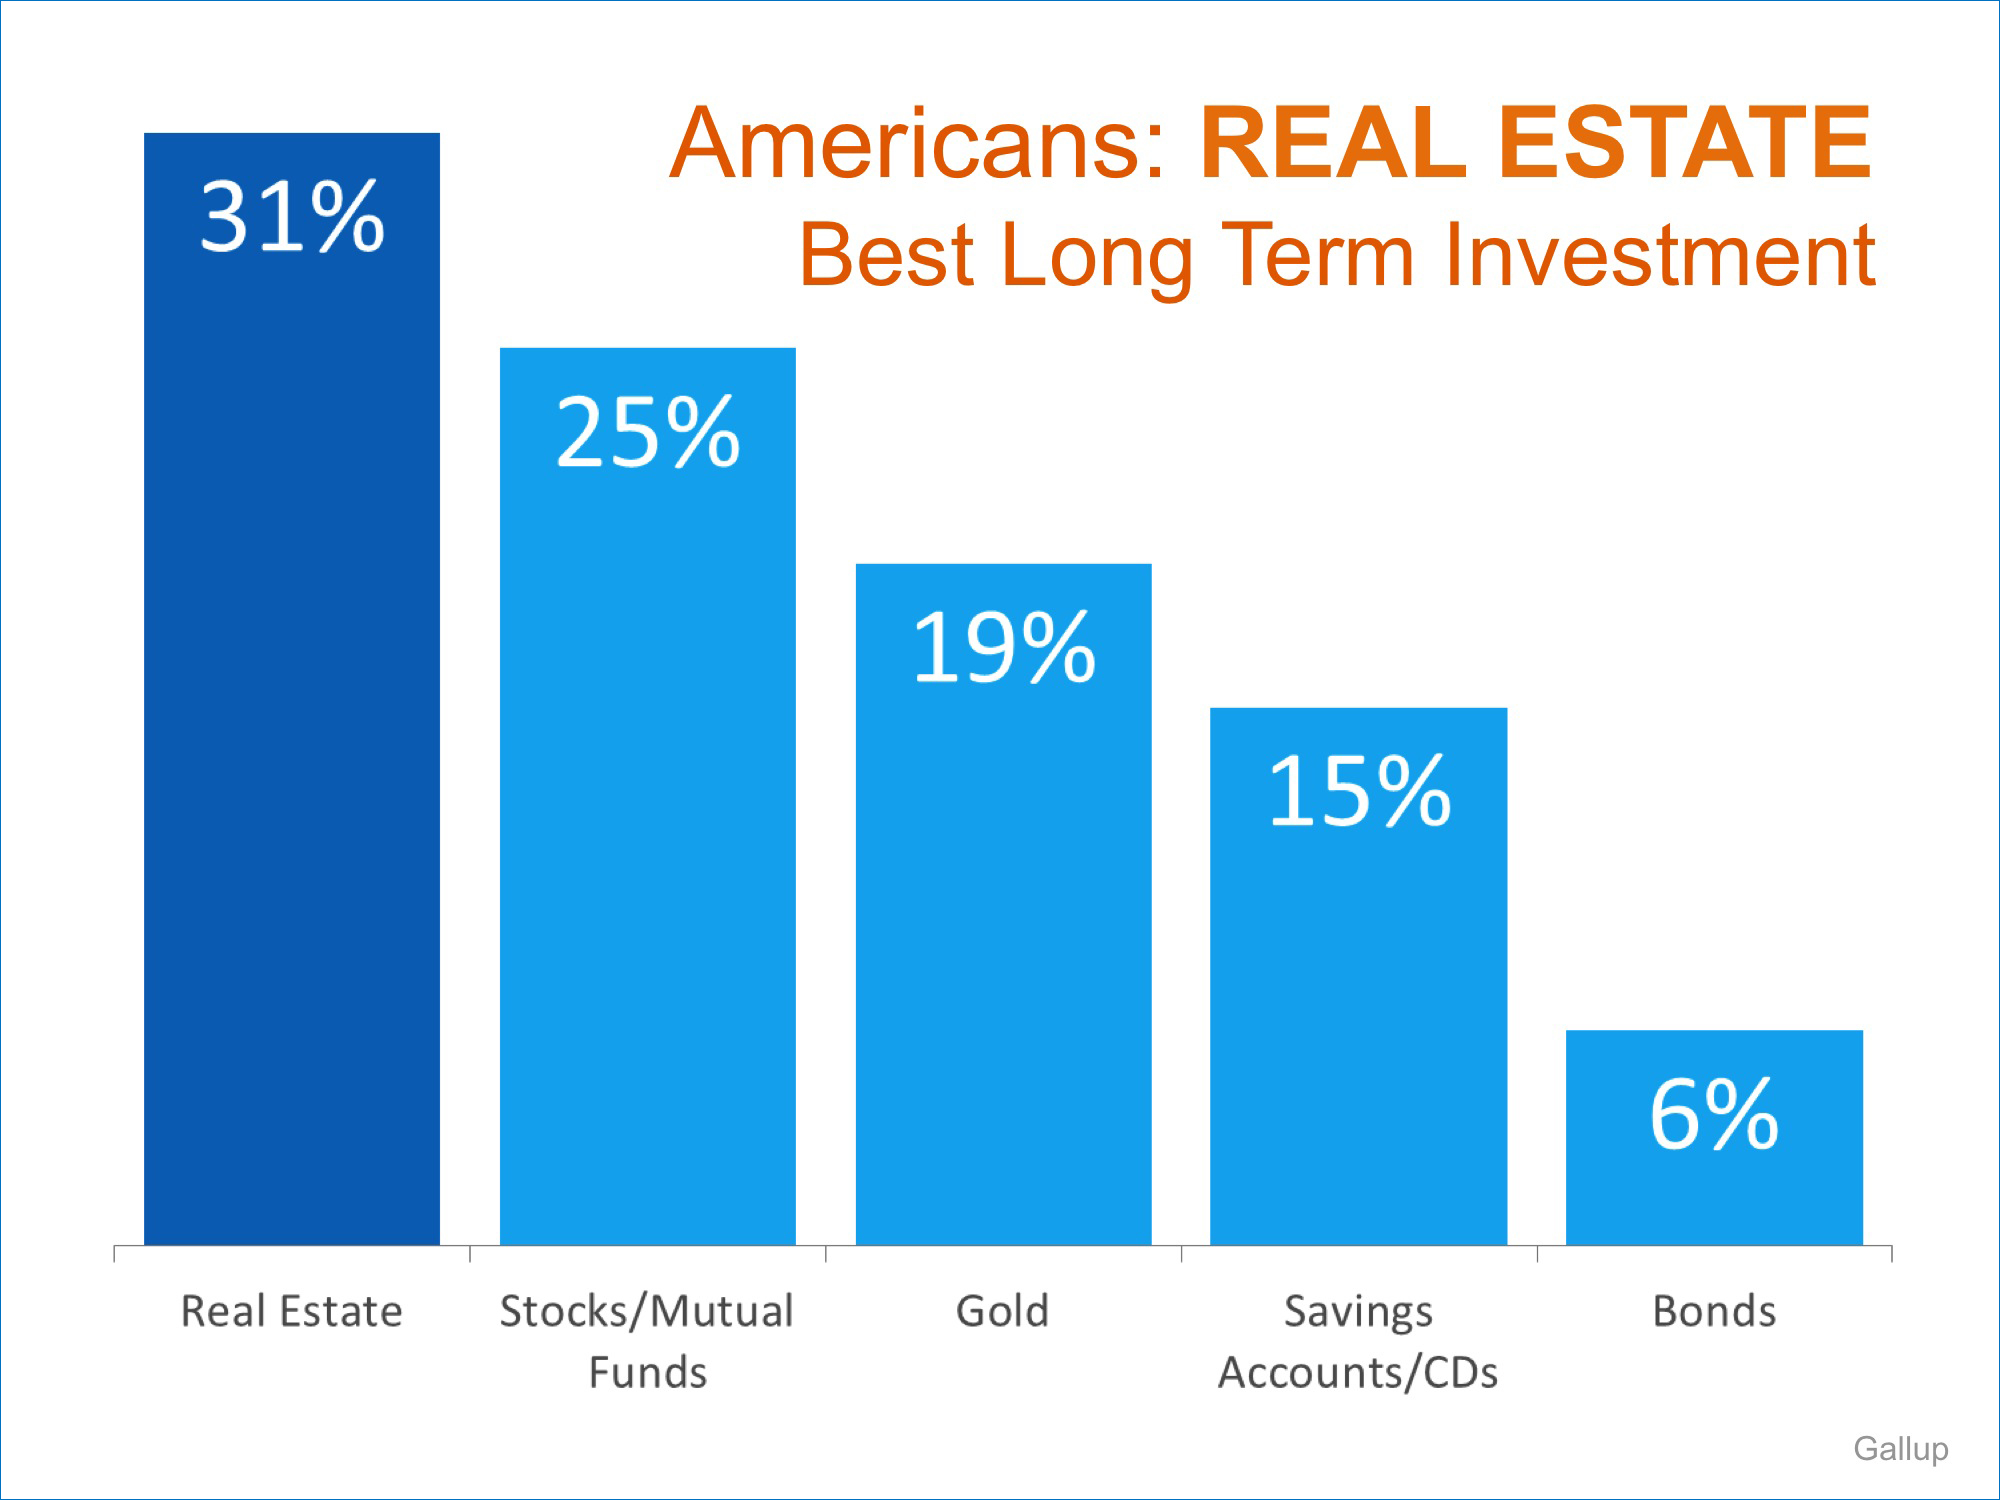 Americans: Real Estate is Best Long-Term Investment | Simplifying The Market